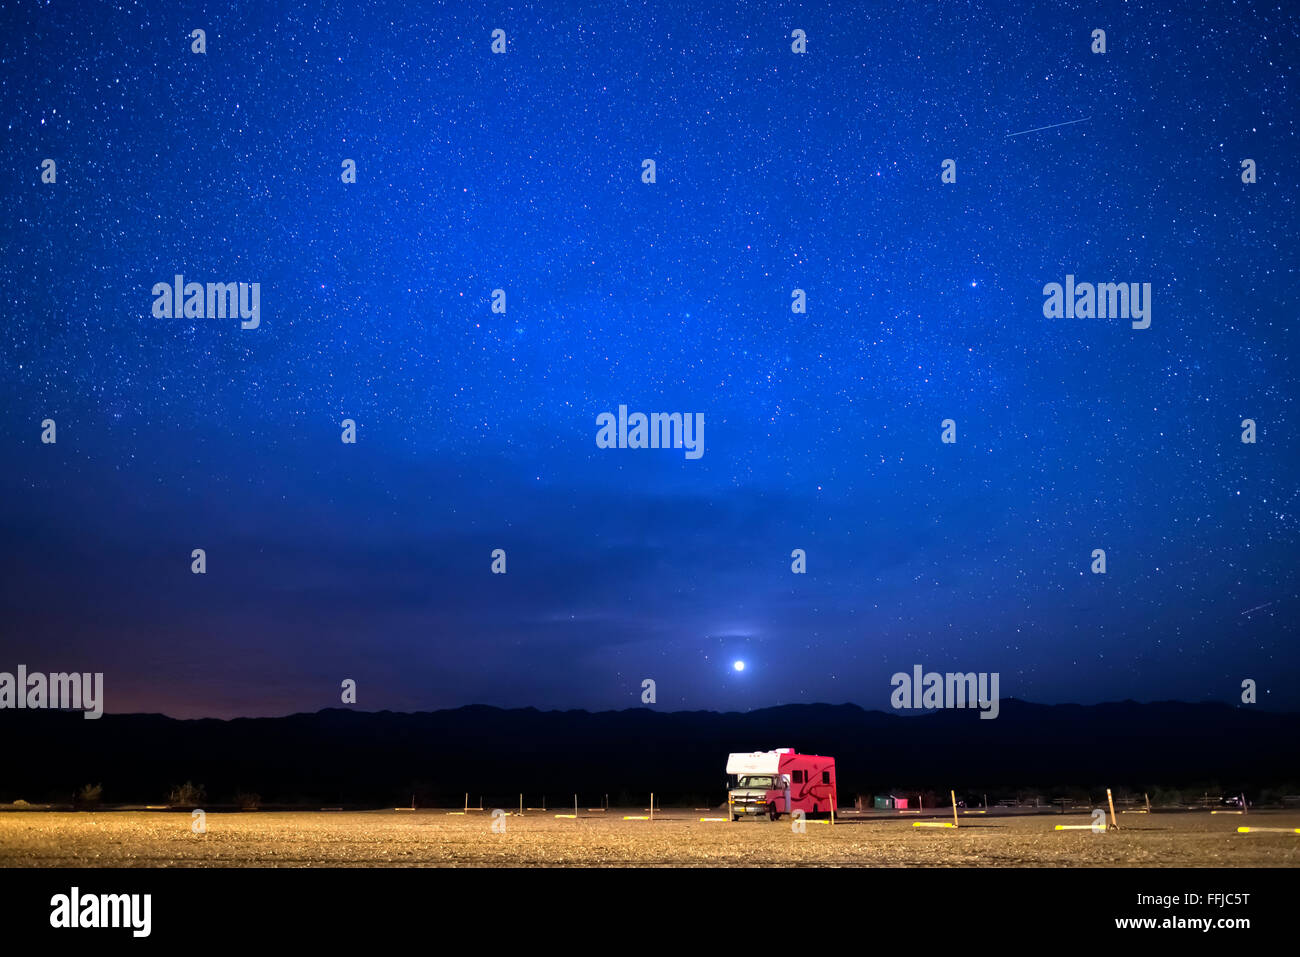 A starry sky over a lone RV parked at Stovepipe Wells Campground in Death Valley National Park, California - Stock Image